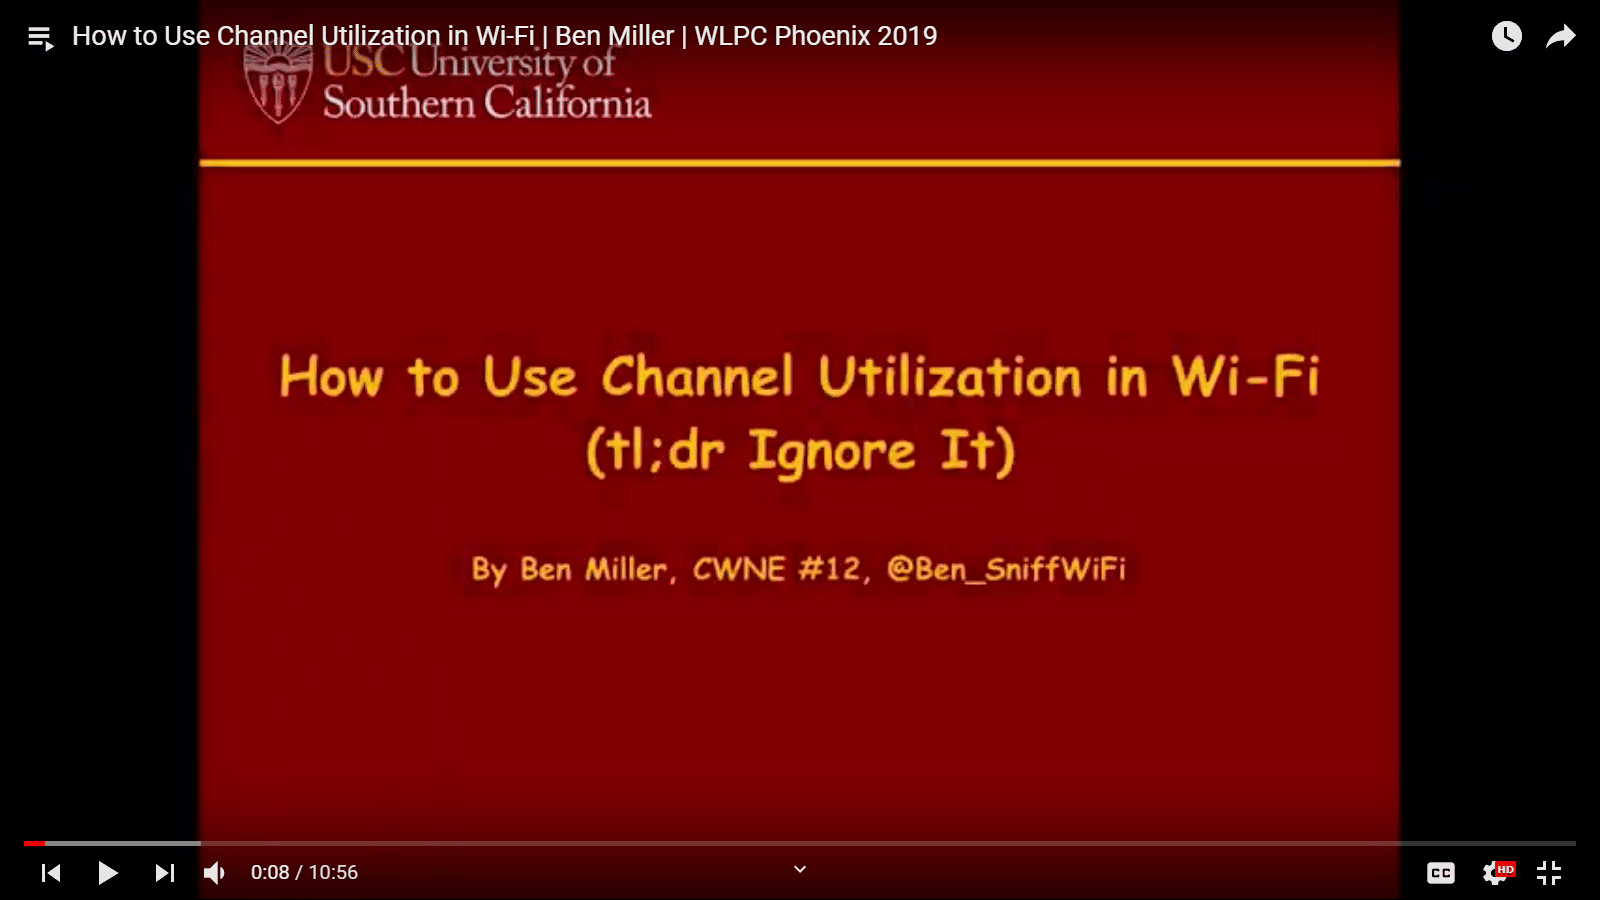 How to Use Channel Utilization in Wi-Fi | Ben Miller | WLPC